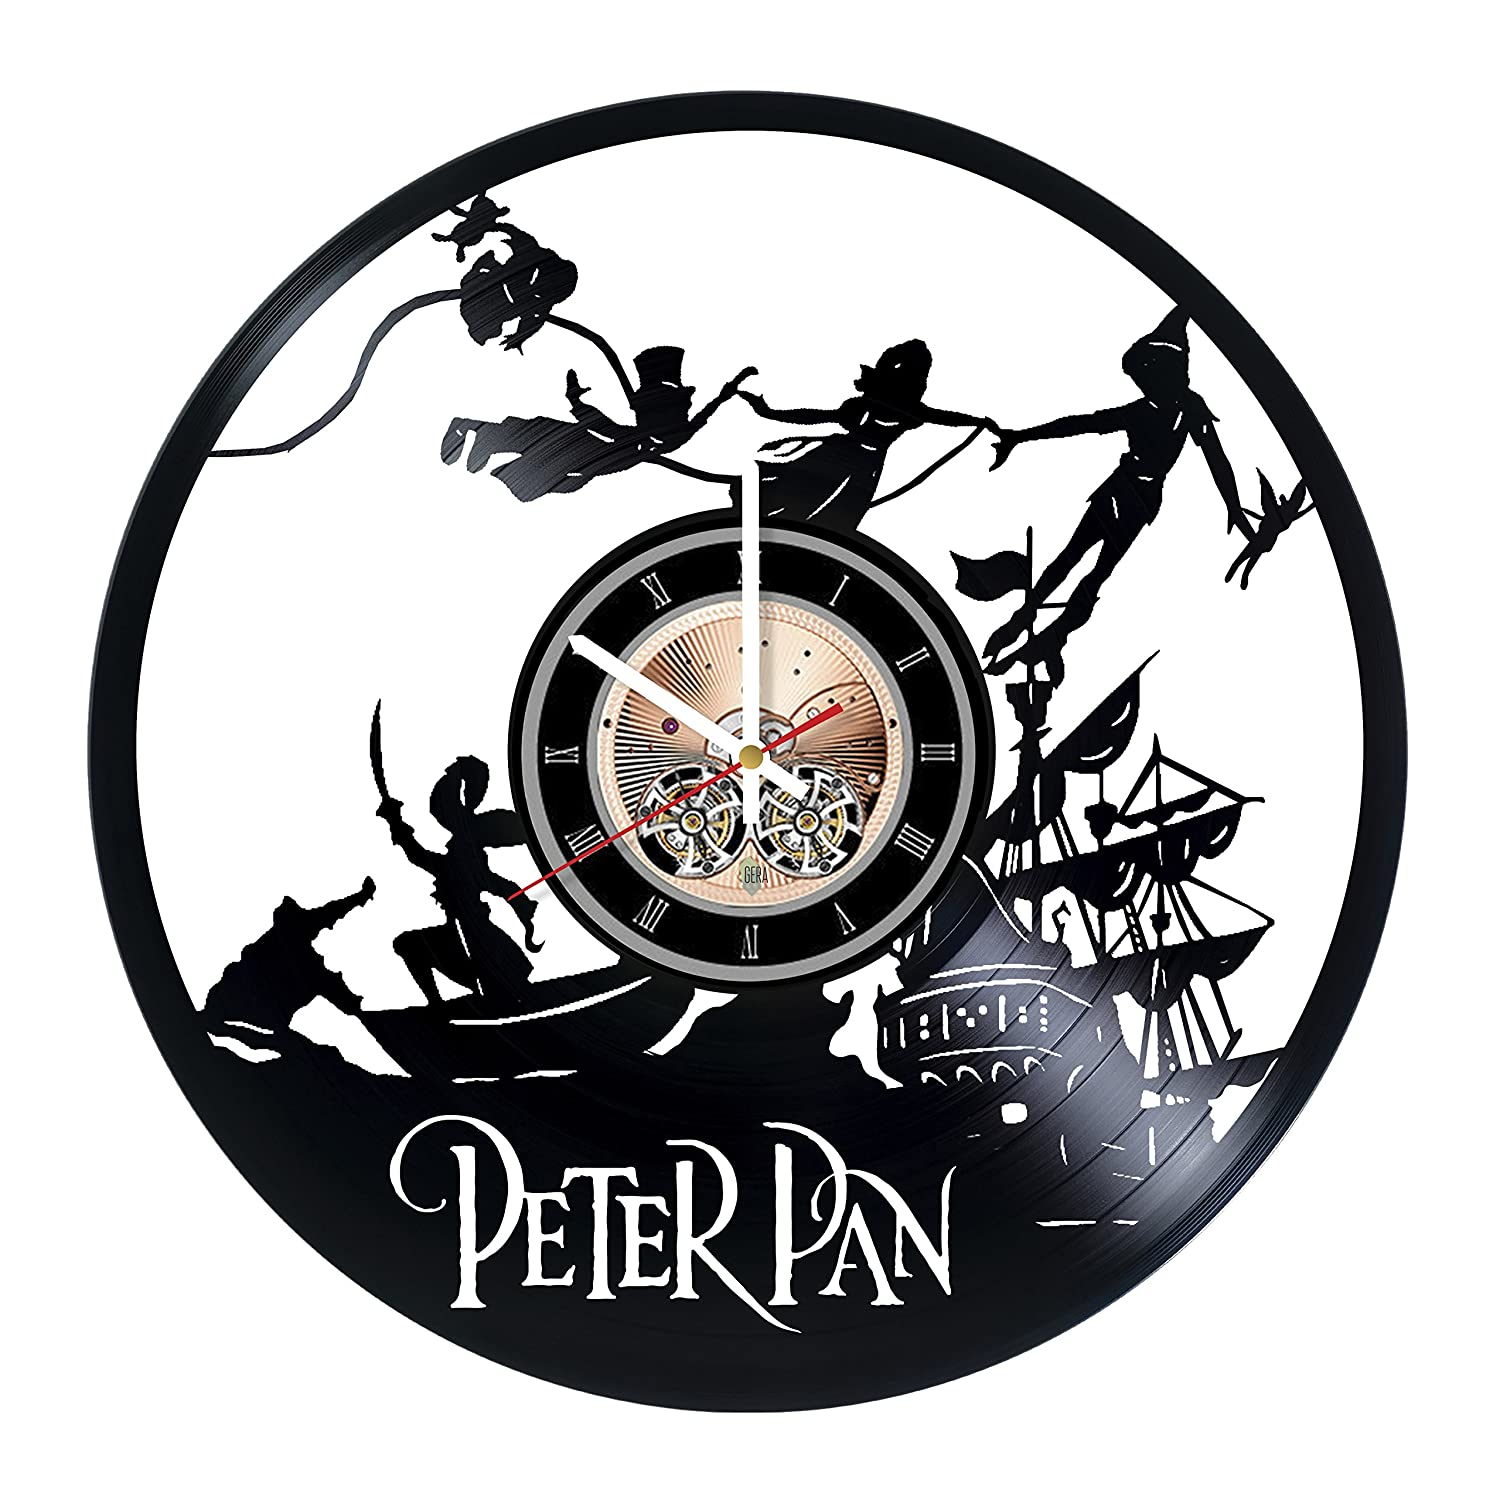 Peter Pan Vinyl Record Wall Clock - Get unique Nursery Room wall decor - Gift ideas for children, teens, baby - Cartoon Unique Art Sofa Style SS00129